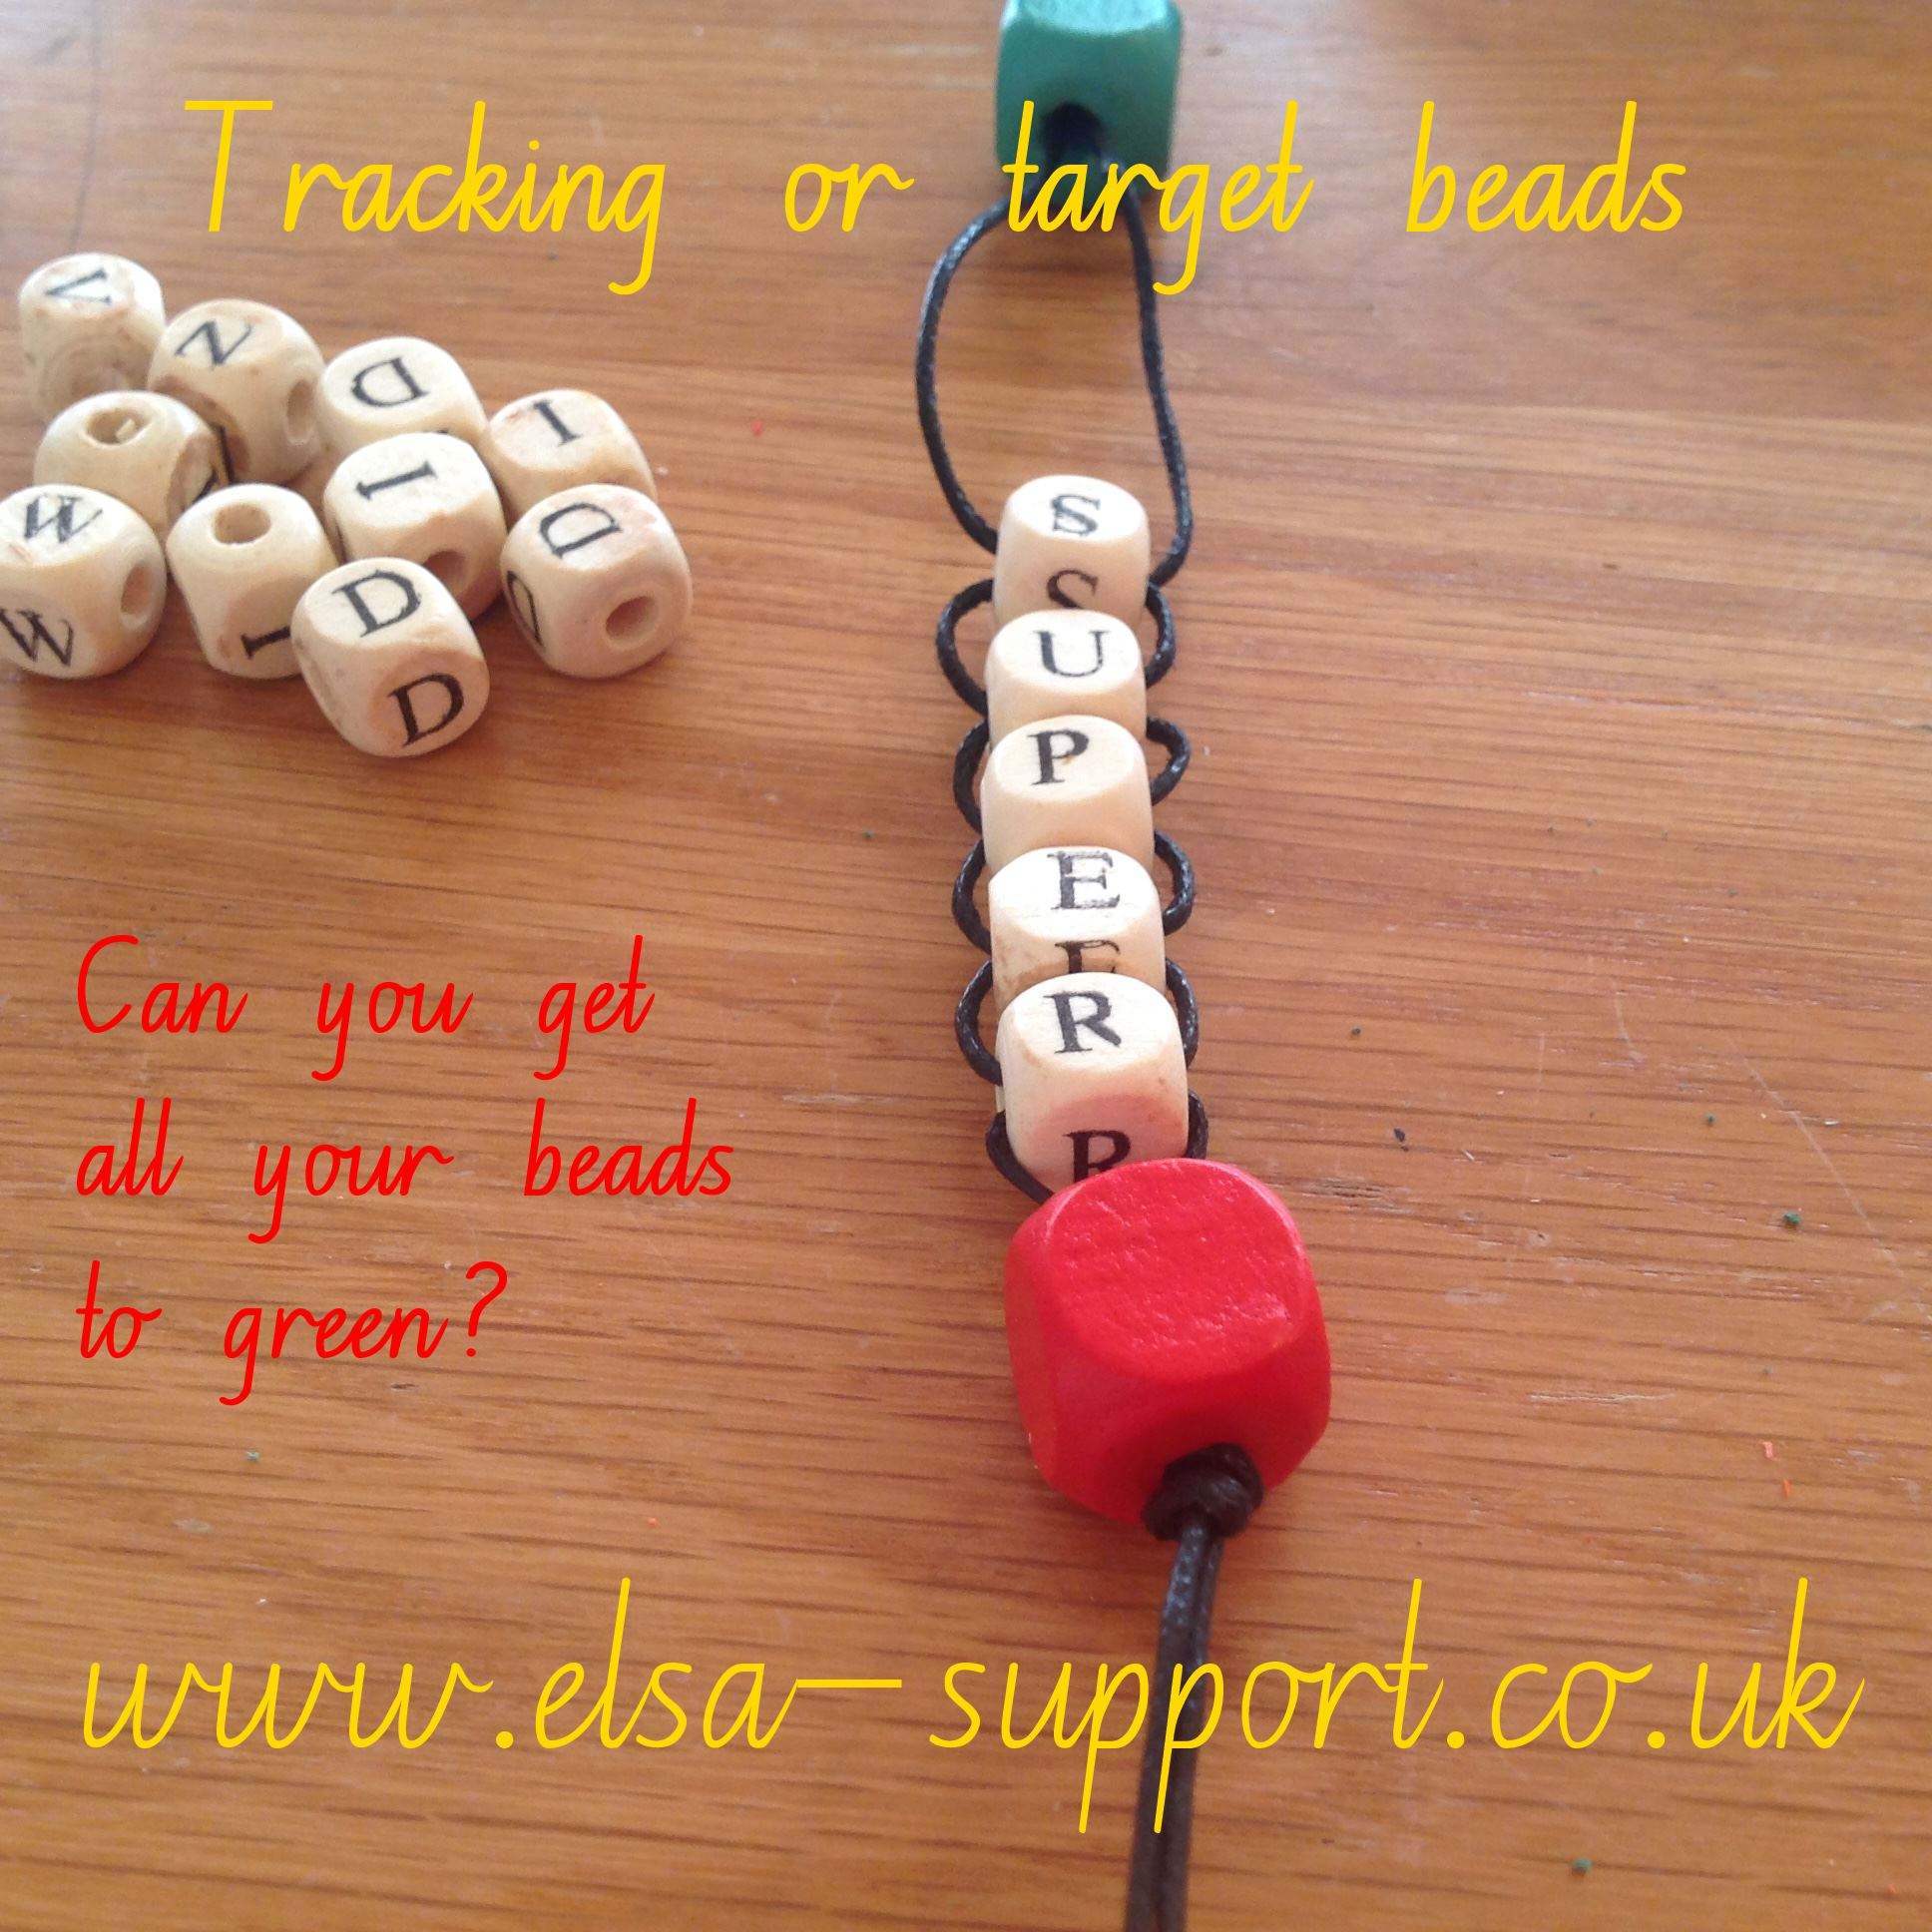 tracking beads images 2